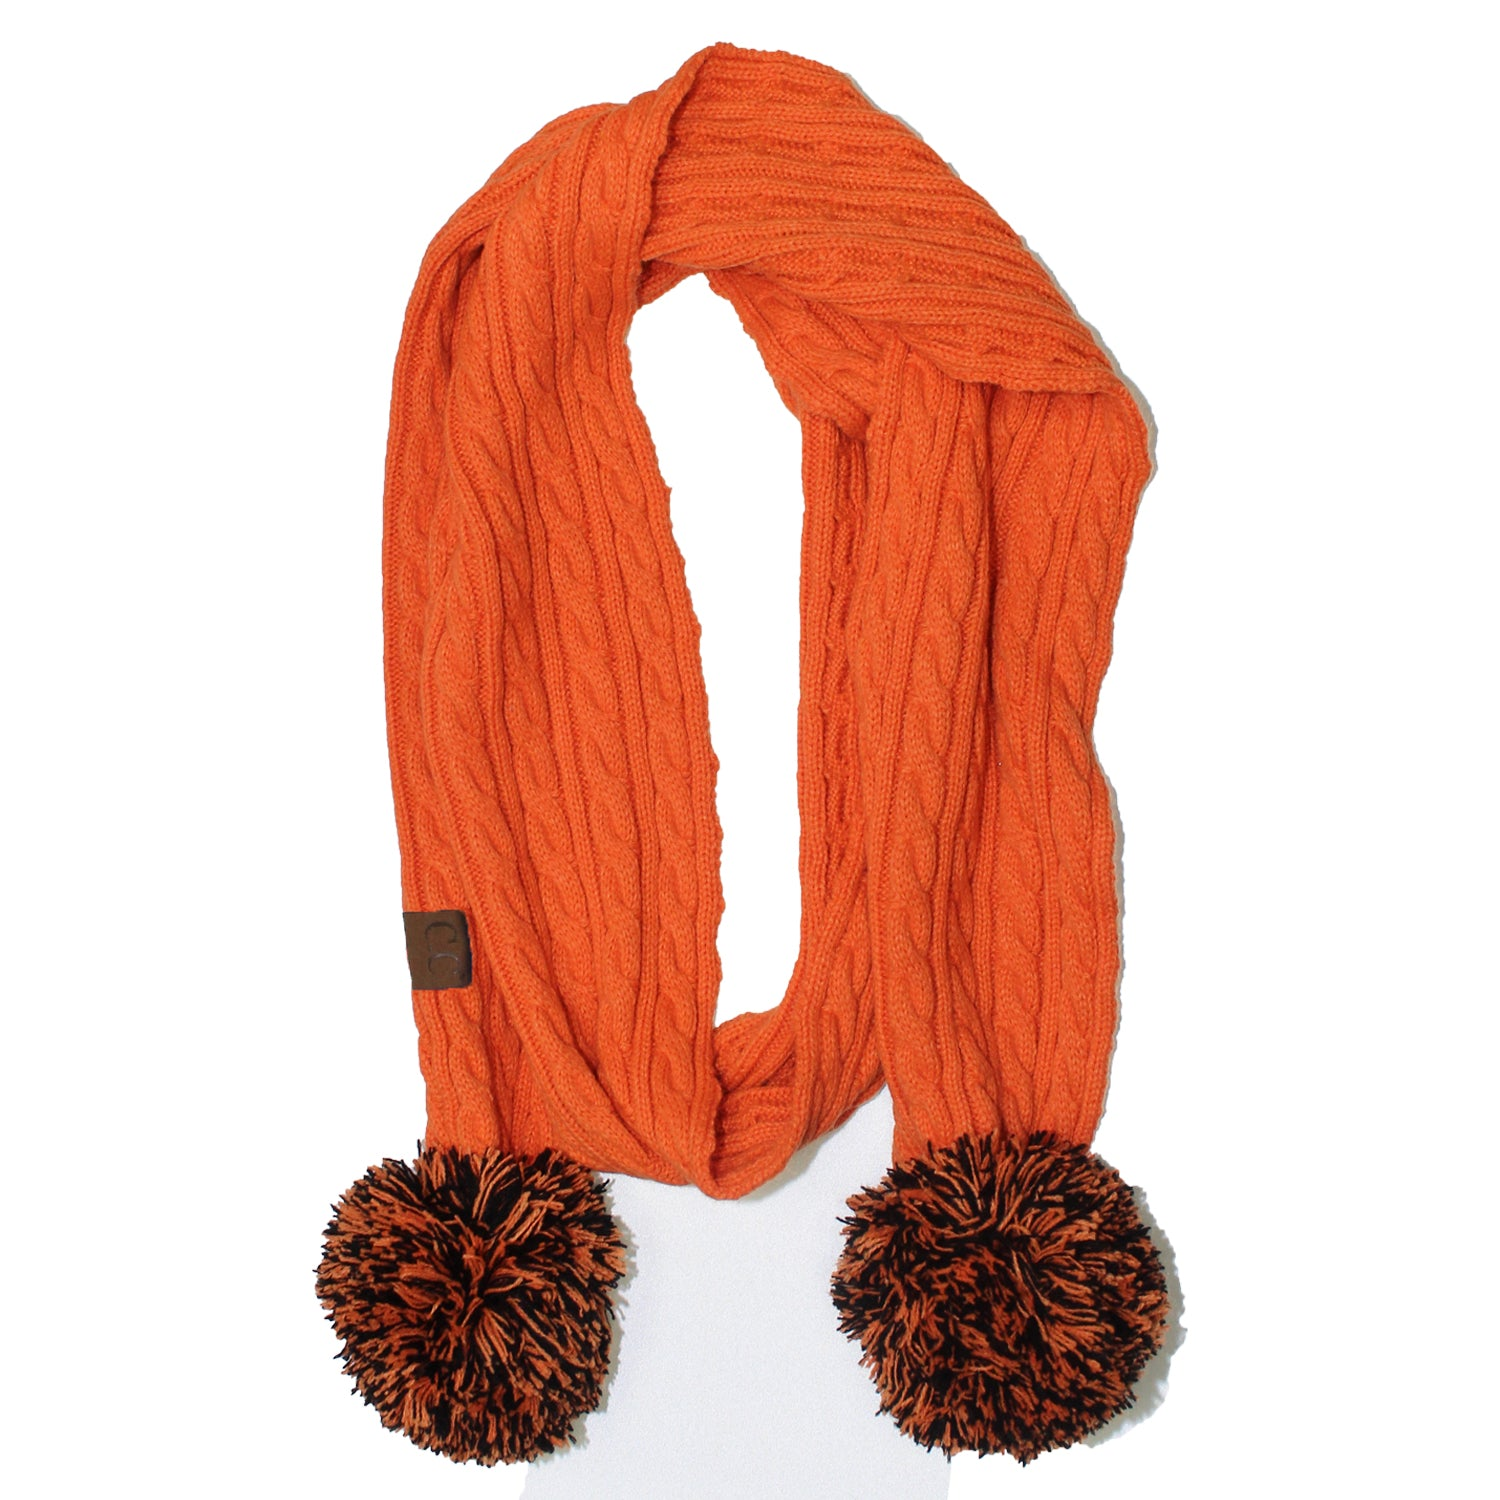 SK-56 Orange and Black Team Pom-Pom Scarf